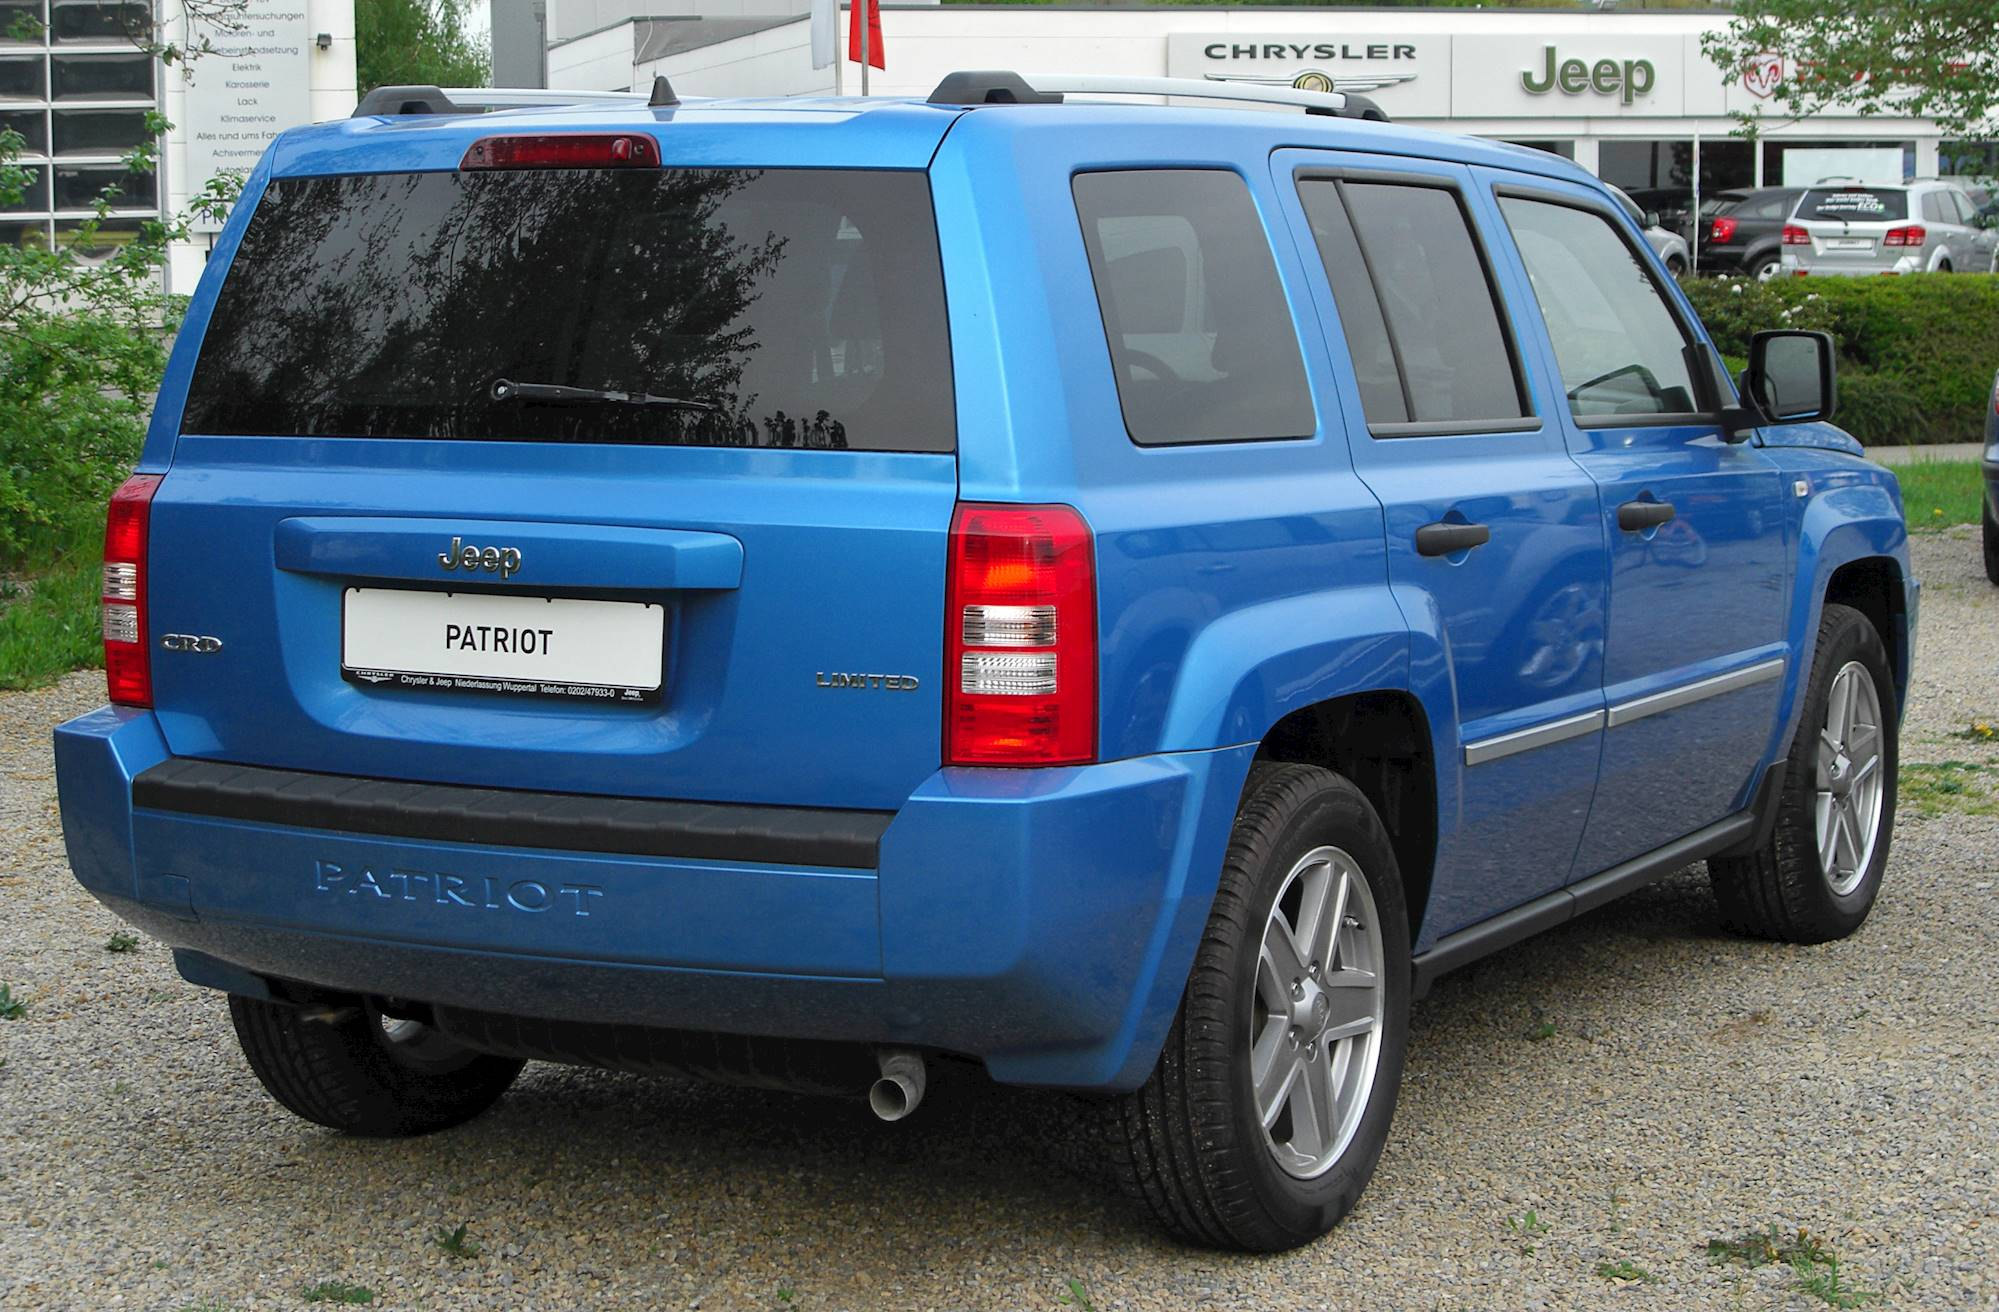 Jeep Patriot 2010 Owners Manual